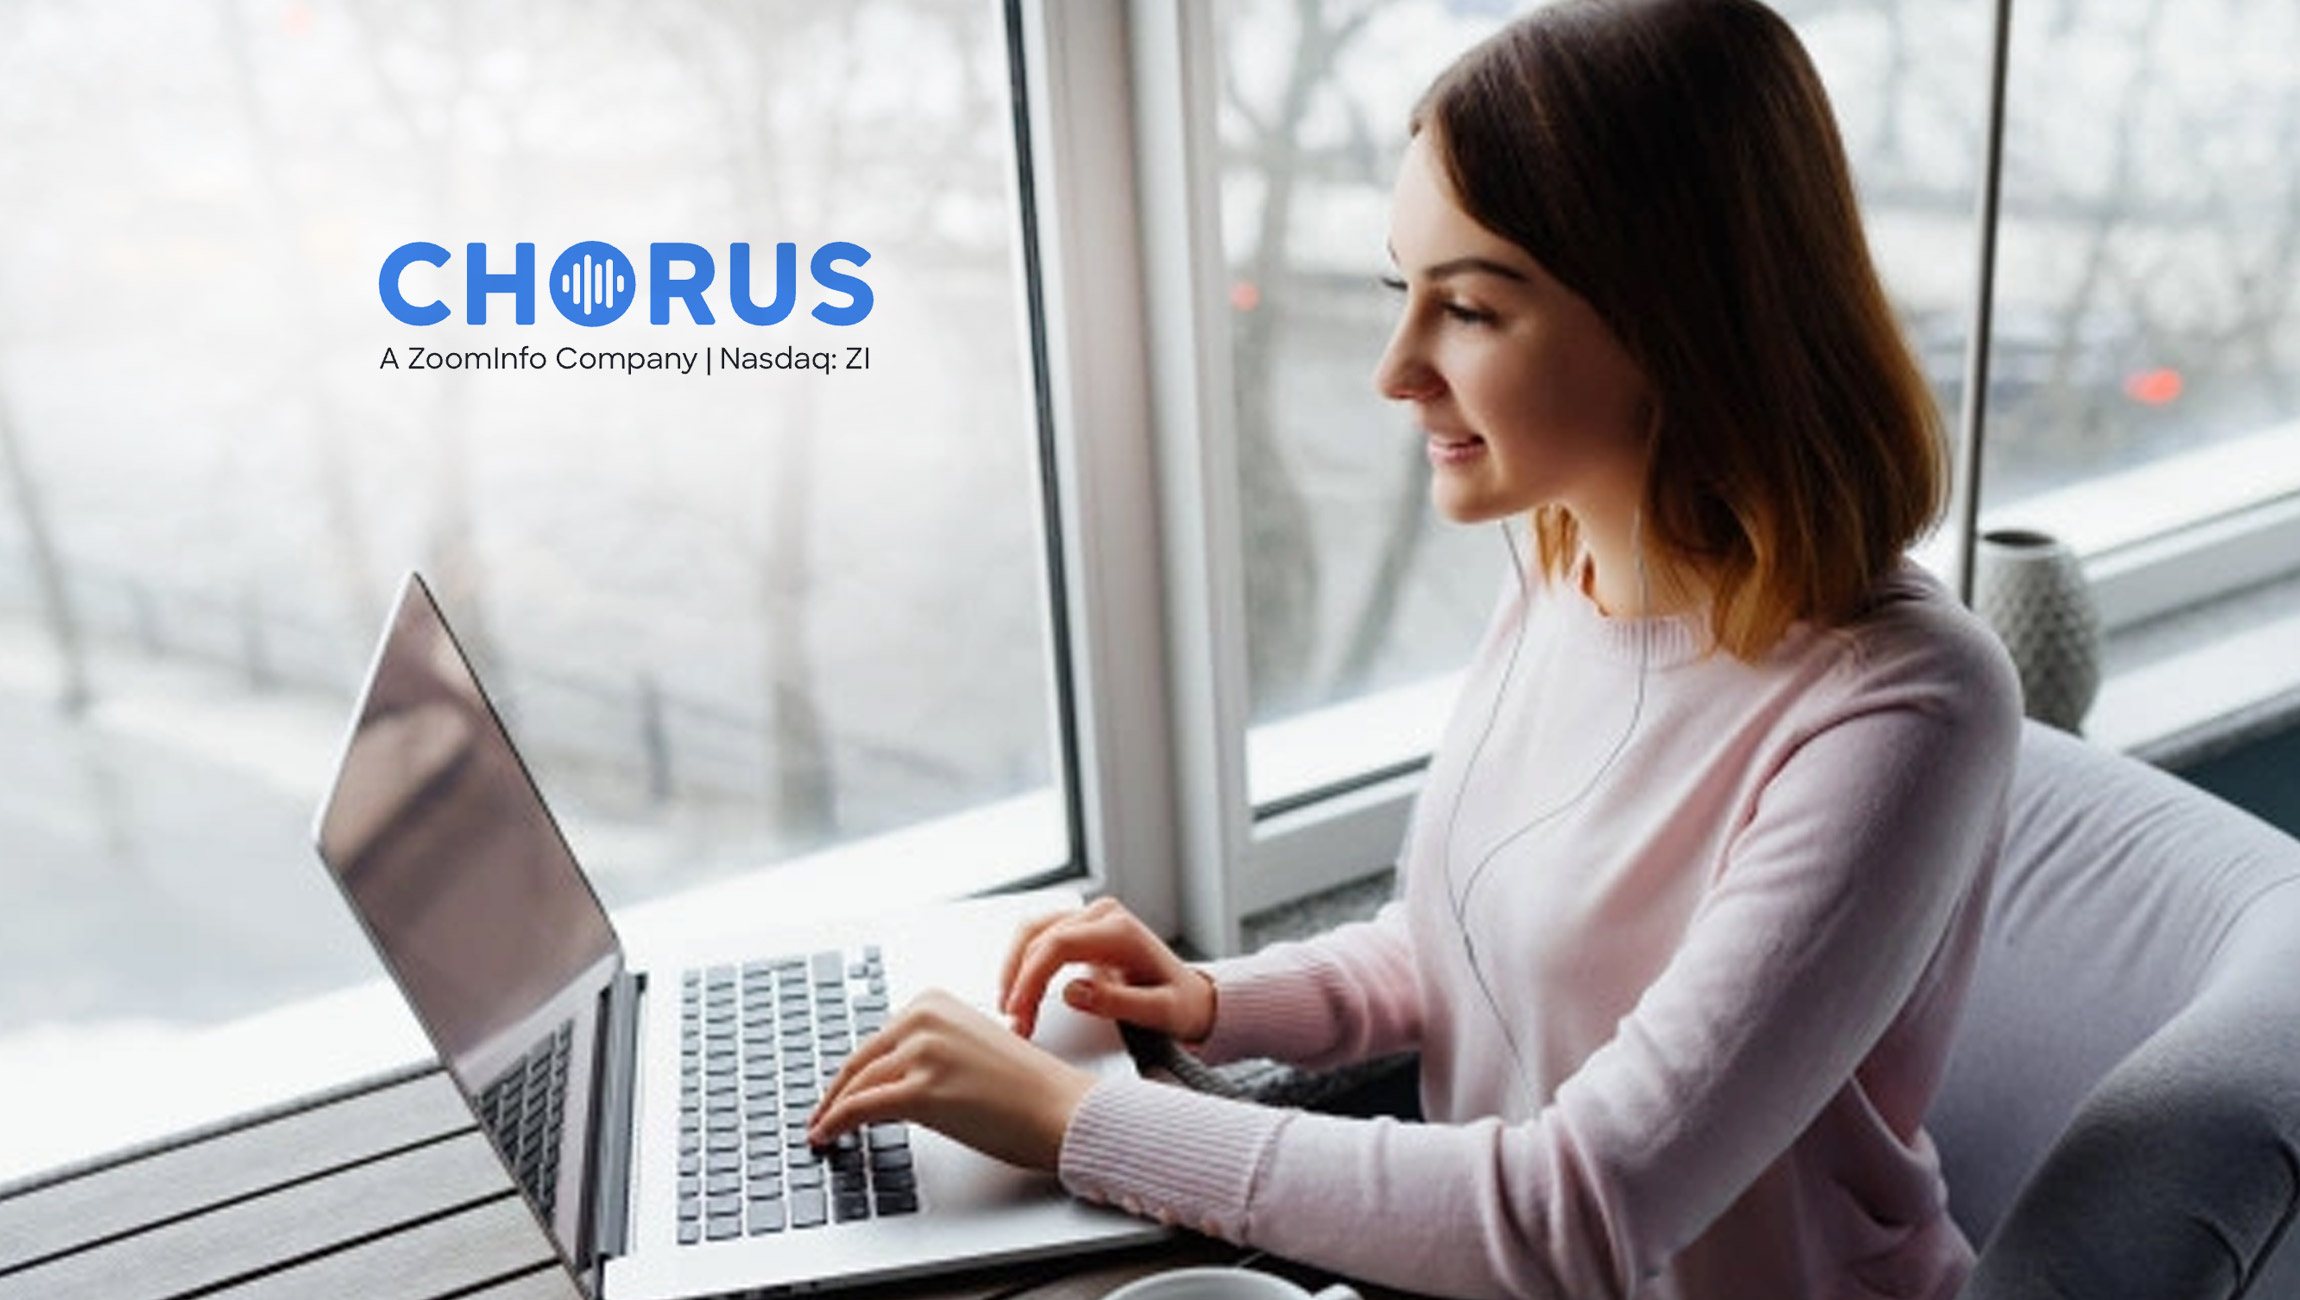 Chorus.ai-Cited-As-A-Strong-Performer-in-New-Report-by-Independent-Research-Firm